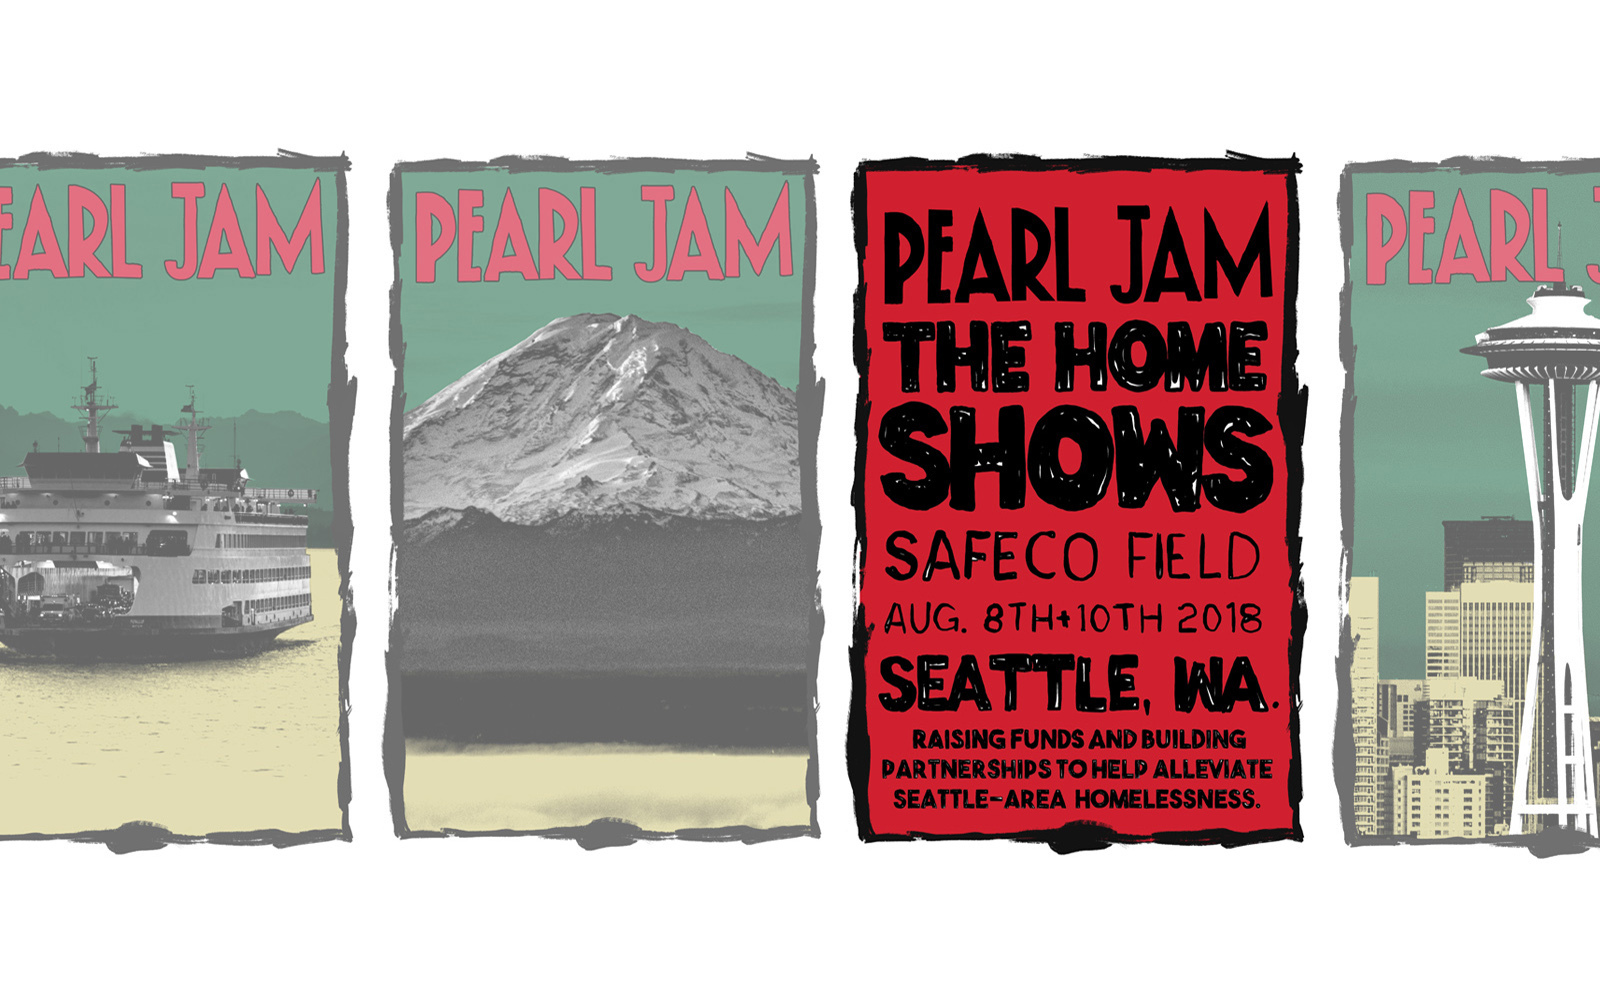 Pearl Jam CONFIRMED Seattle Shows  Aug 8+10 with ticket info